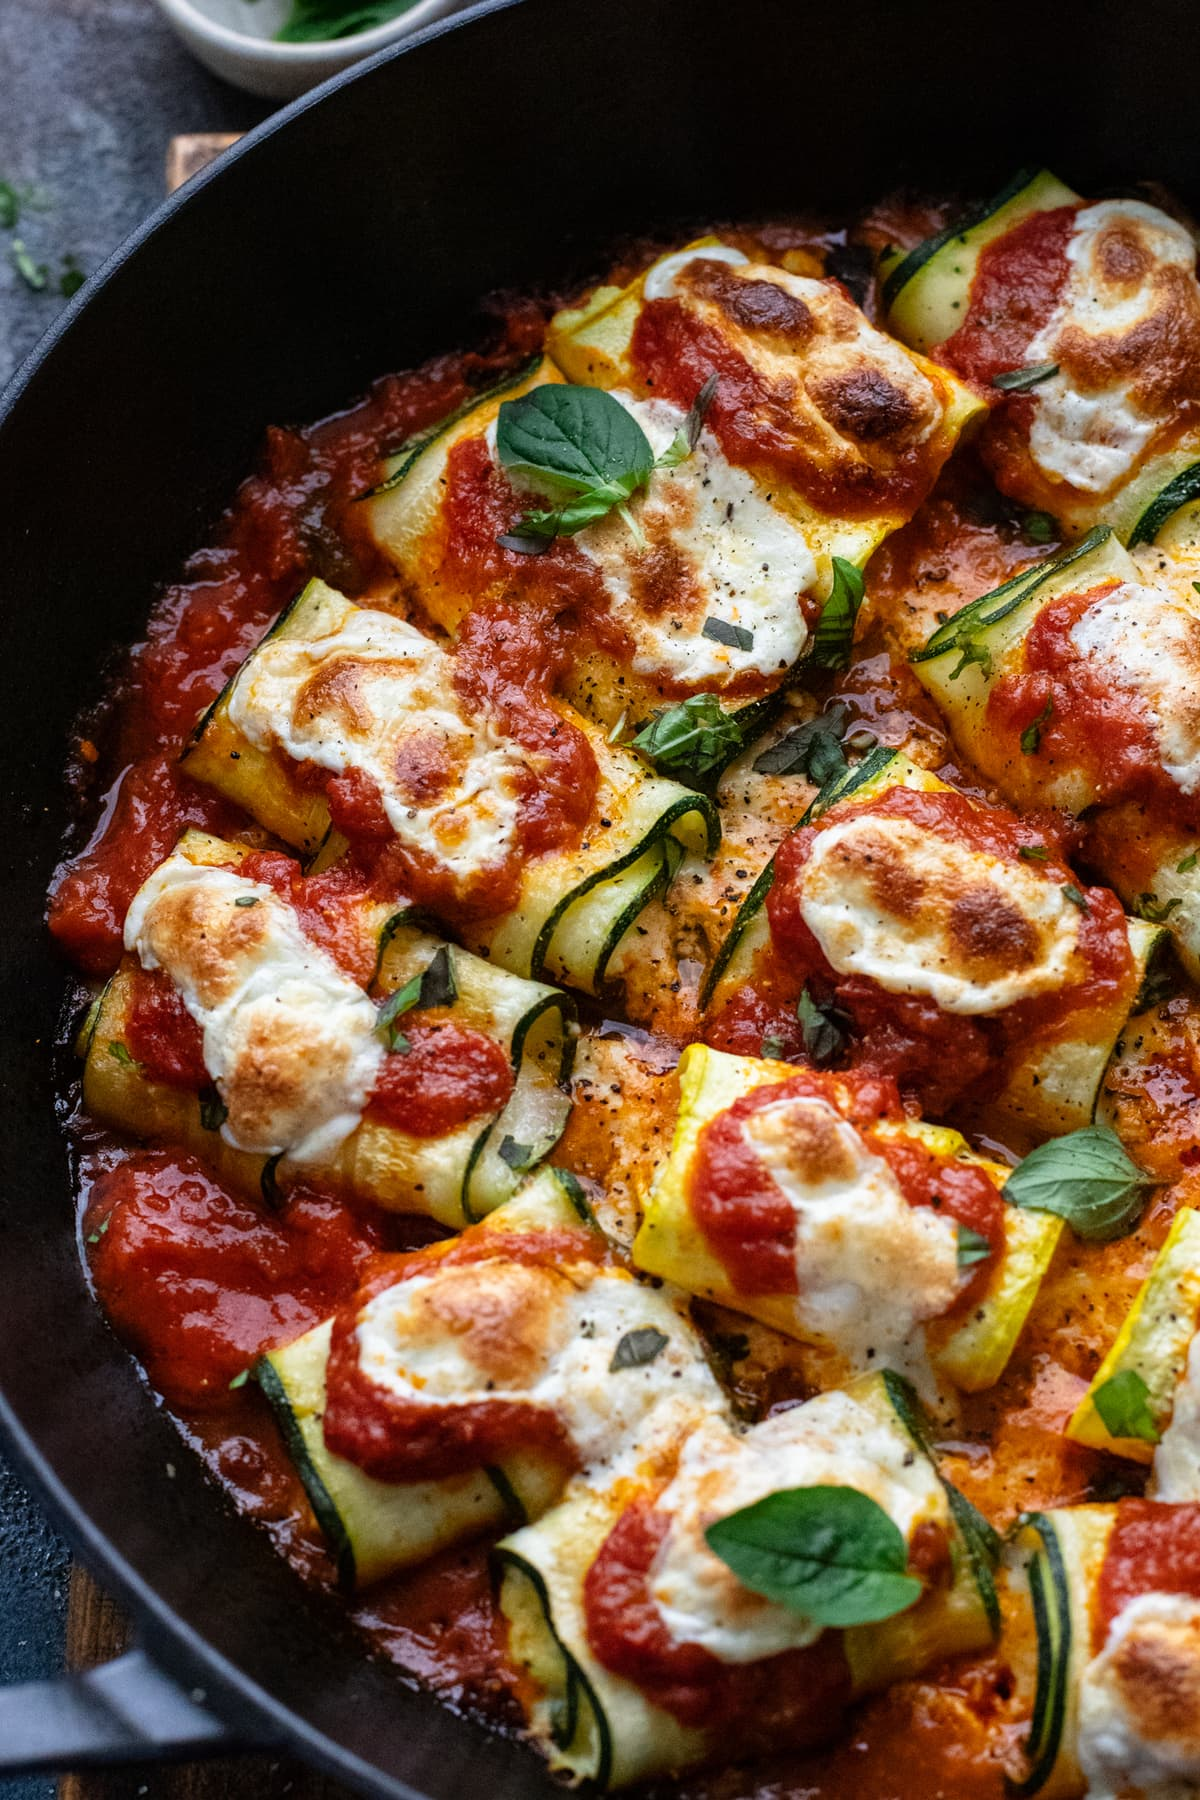 zucchini rollatini baked in a cast iron pan with red sauce and melted cheese.